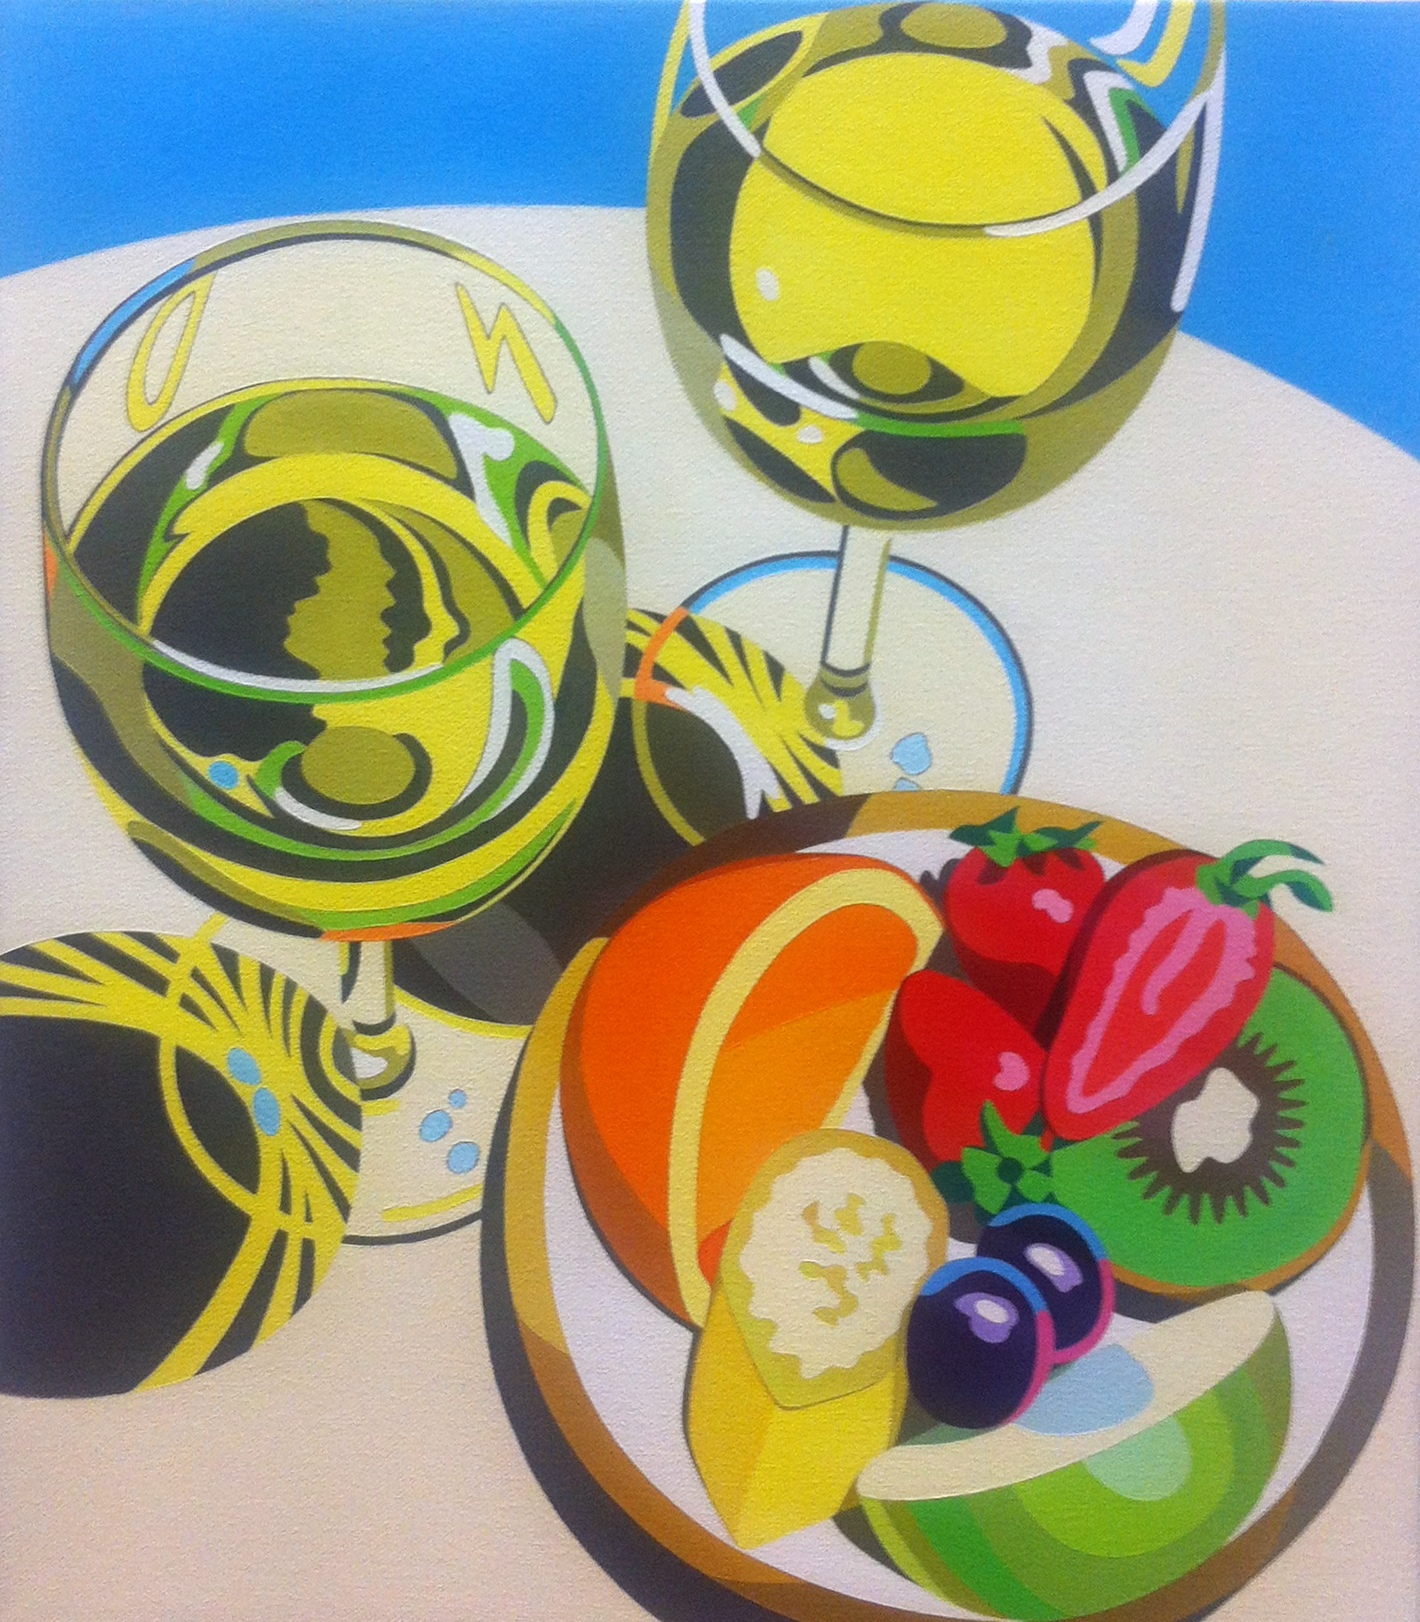 Fruit plate with wine glasses